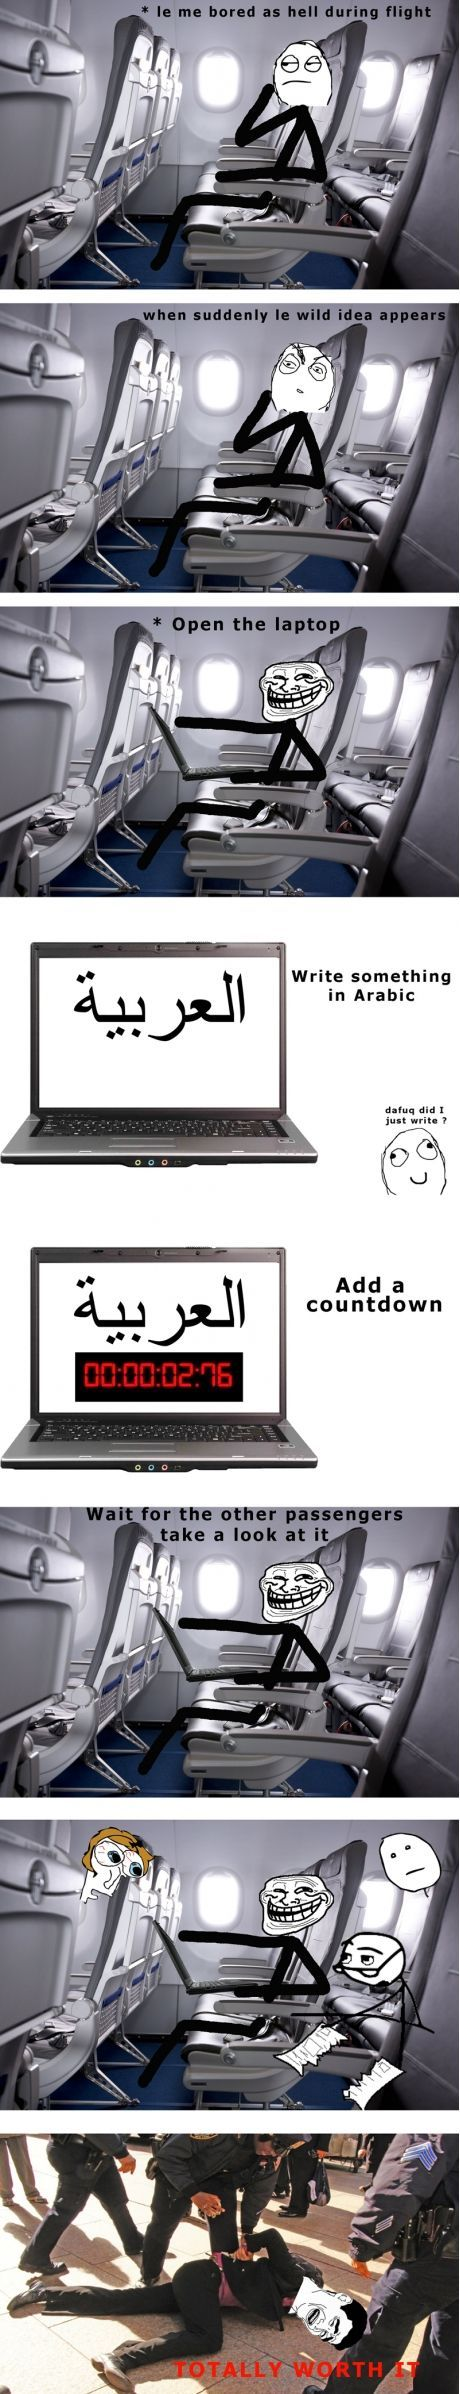 I am an arab. So i know what is written and I could write too.